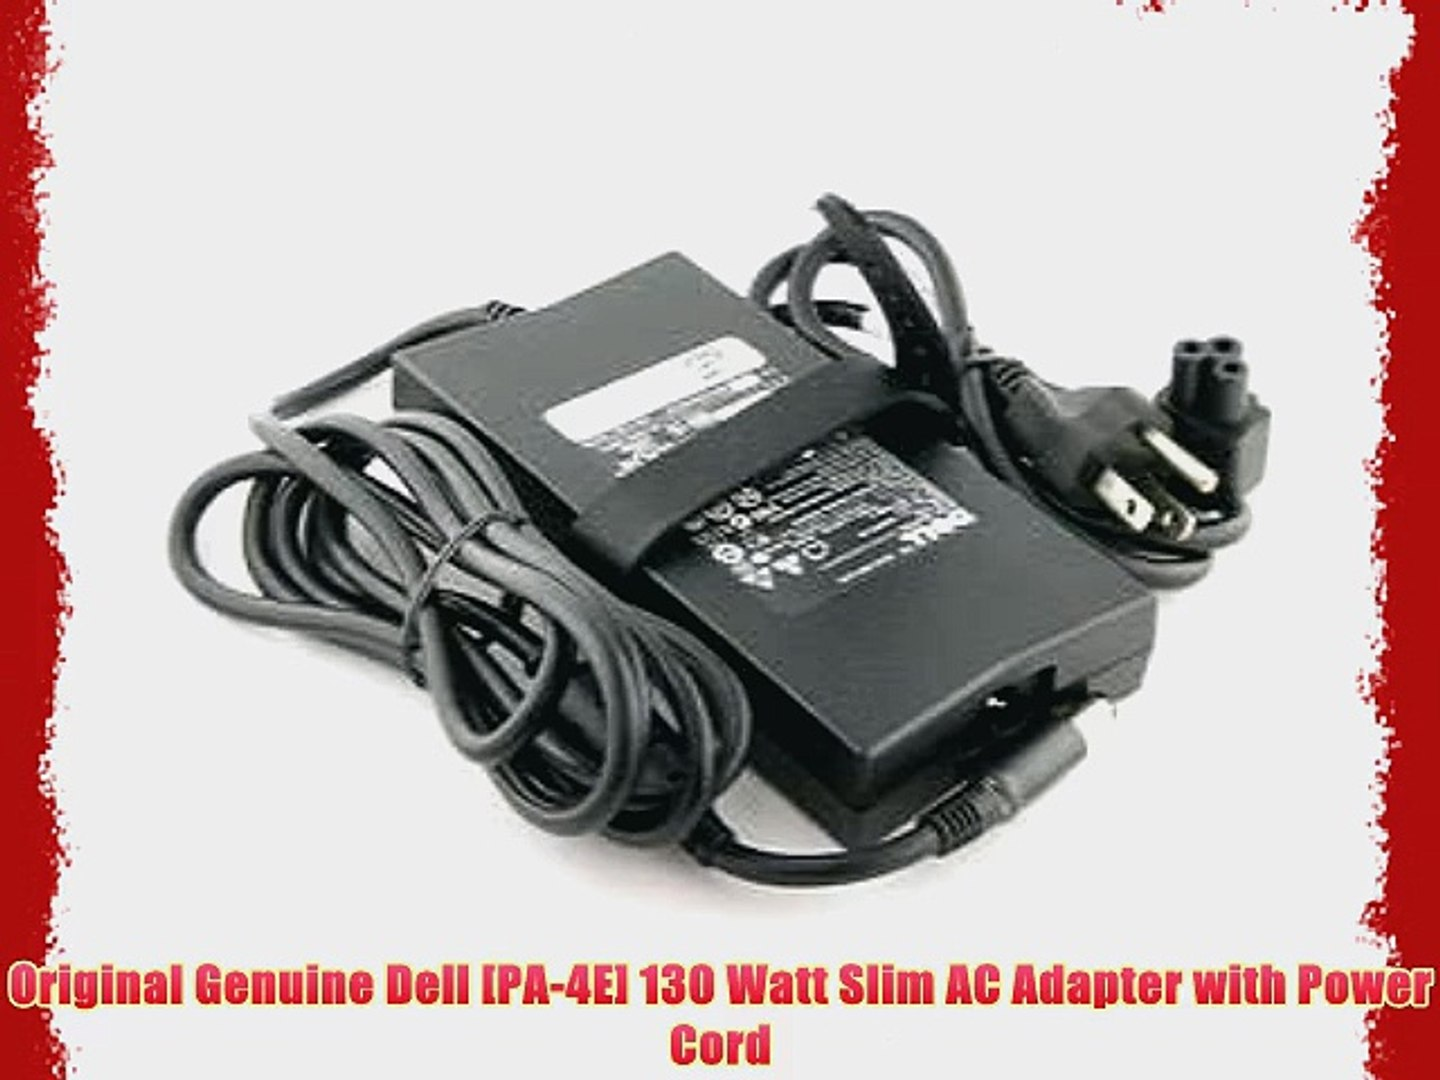 DELL 19.5V 6.7A 130W Replacement AC Adapter for DELL Notebook Models 100% Compatible with DELL